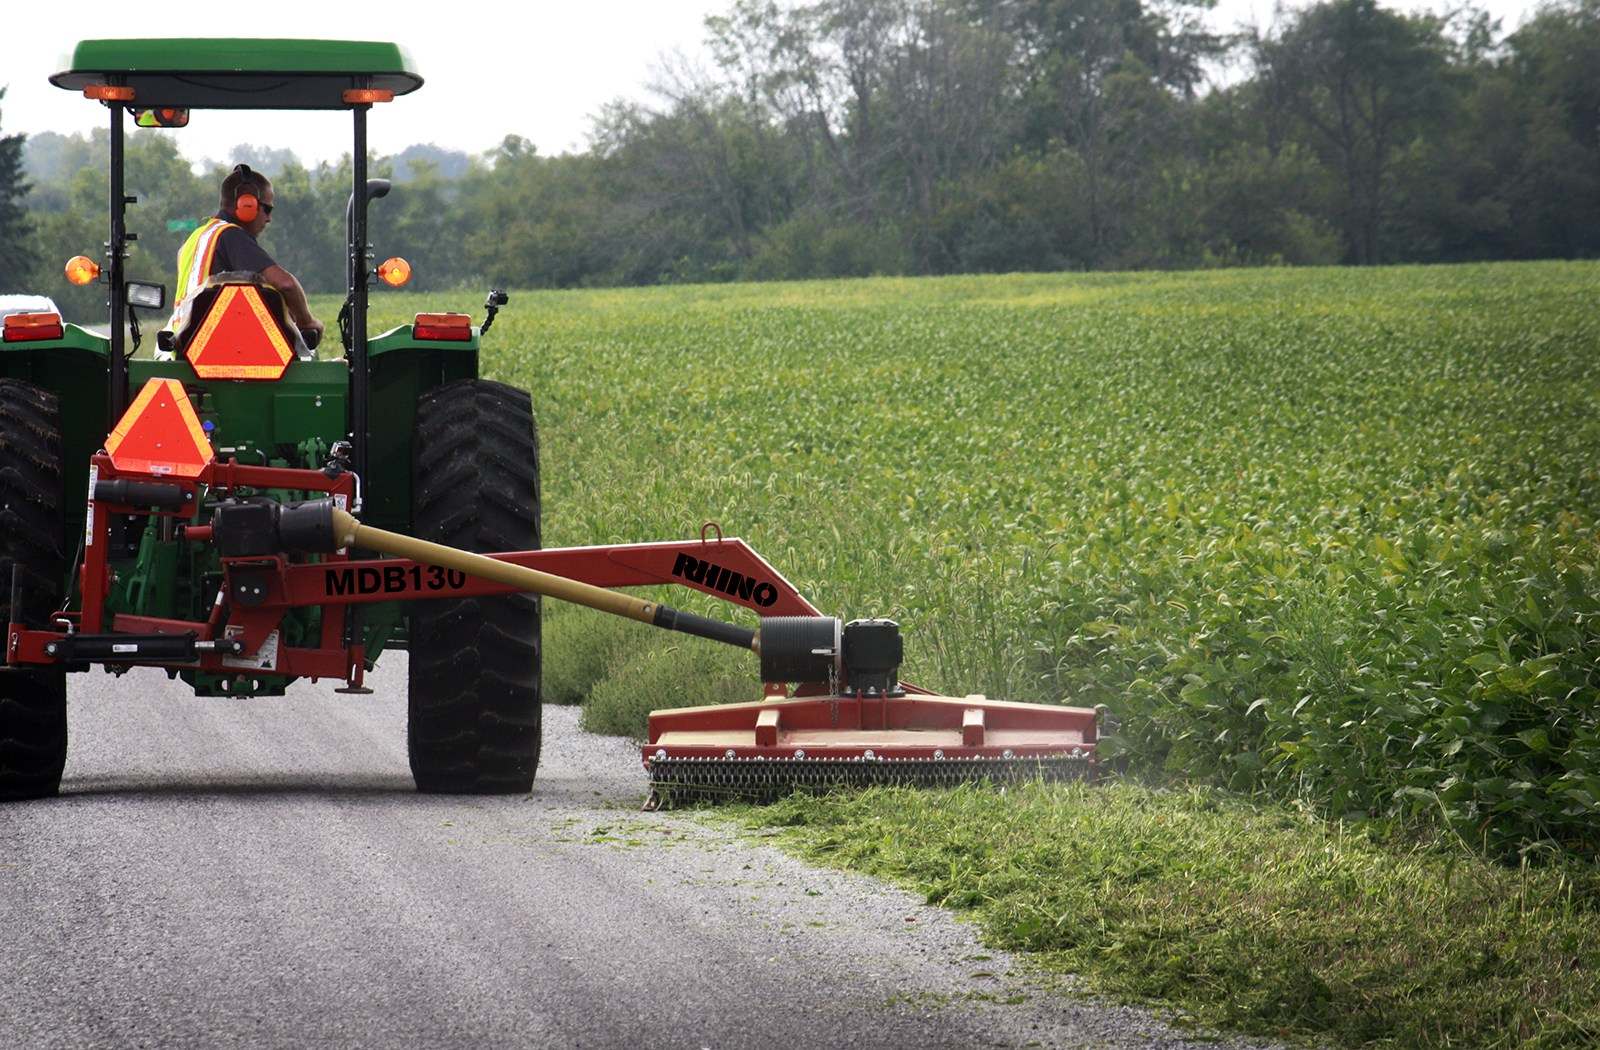 Ag mower cutting grass and plants on the side of the road